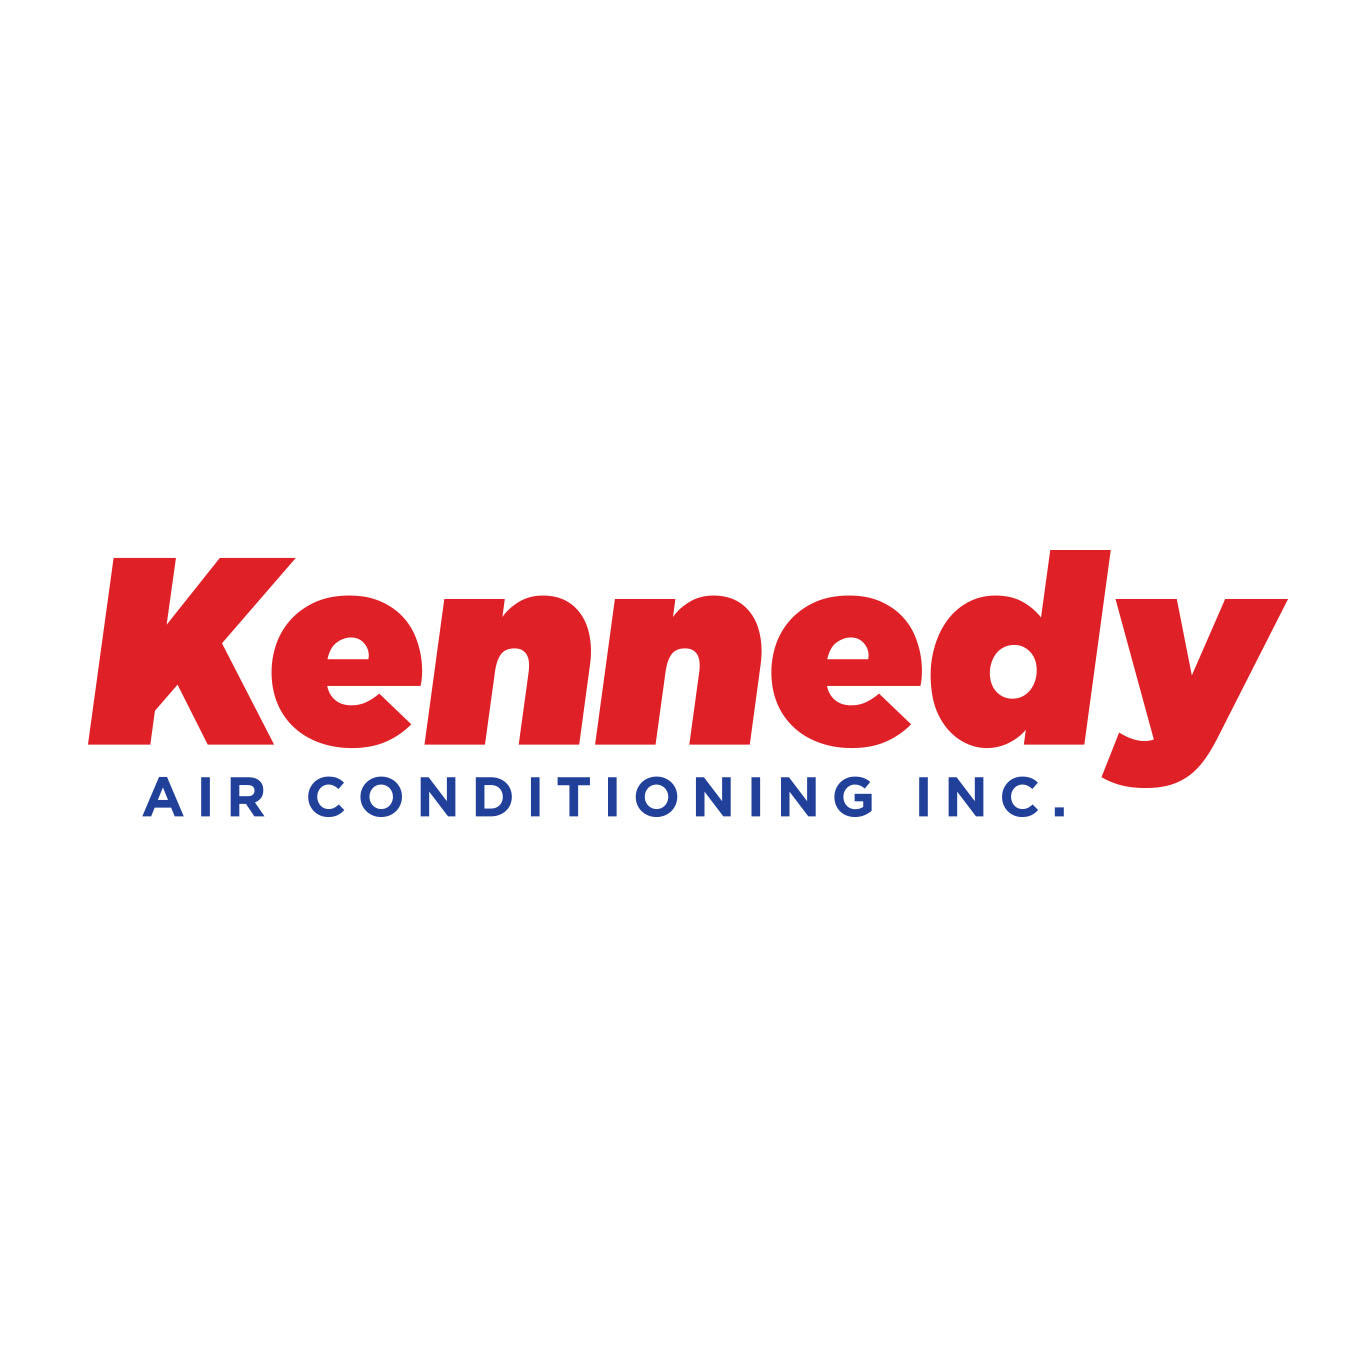 Kennedy Air Conditioning